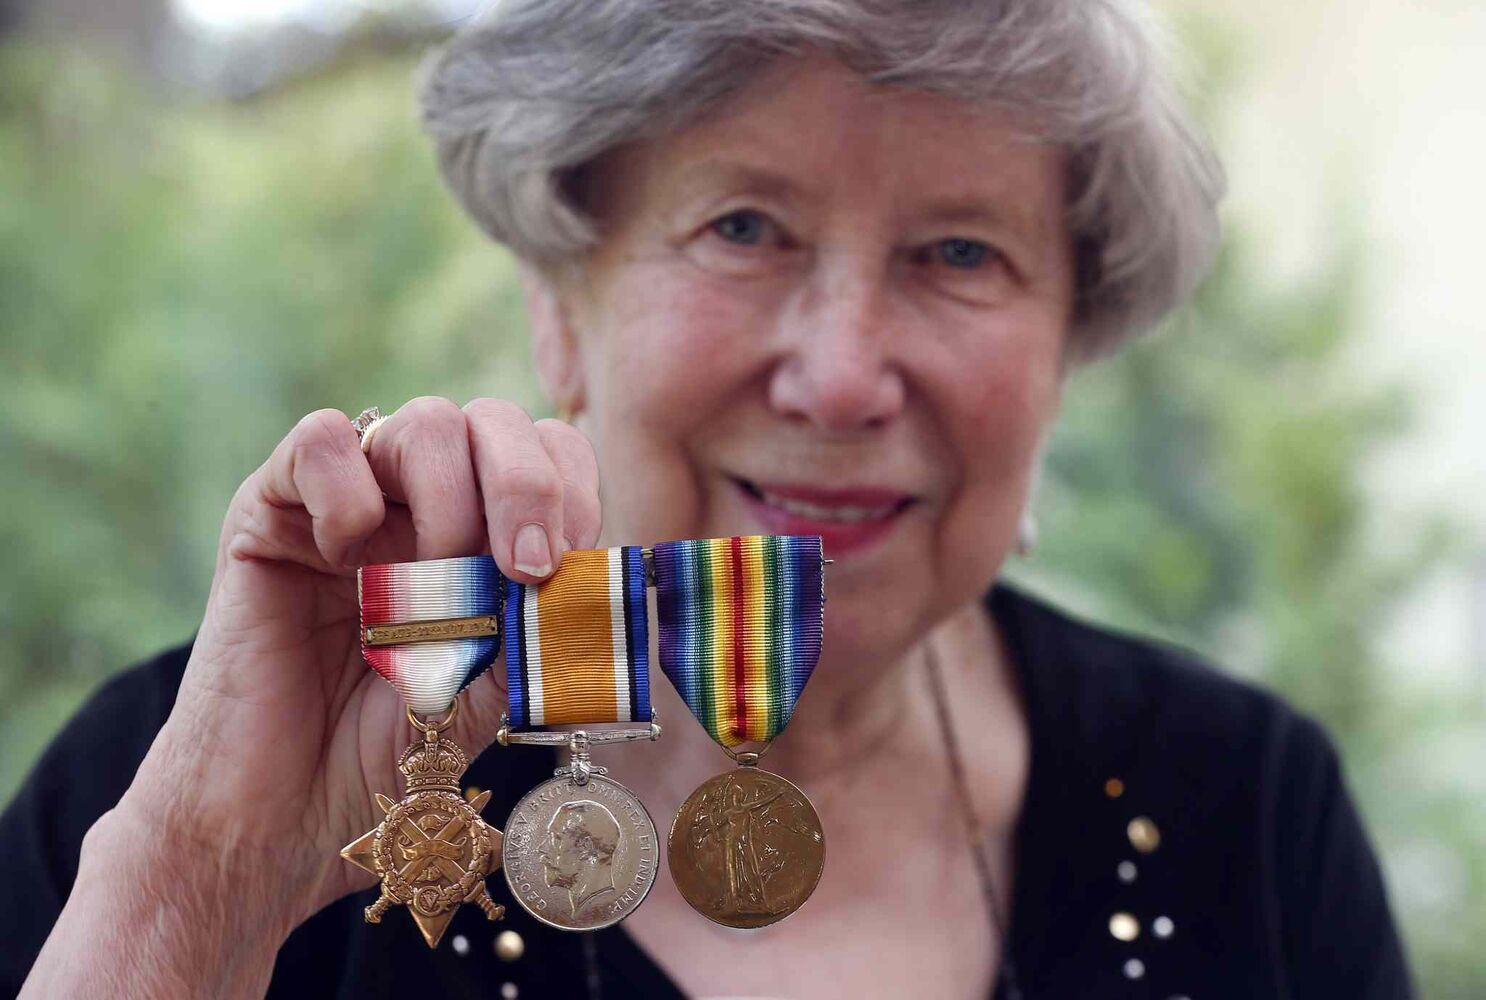 Mildred Wright has her father Carl Rosenberg's medals from the First World War along with a photo of him and his brother in uniform.  (Ken Gigliotti / Winnipeg Free Press)